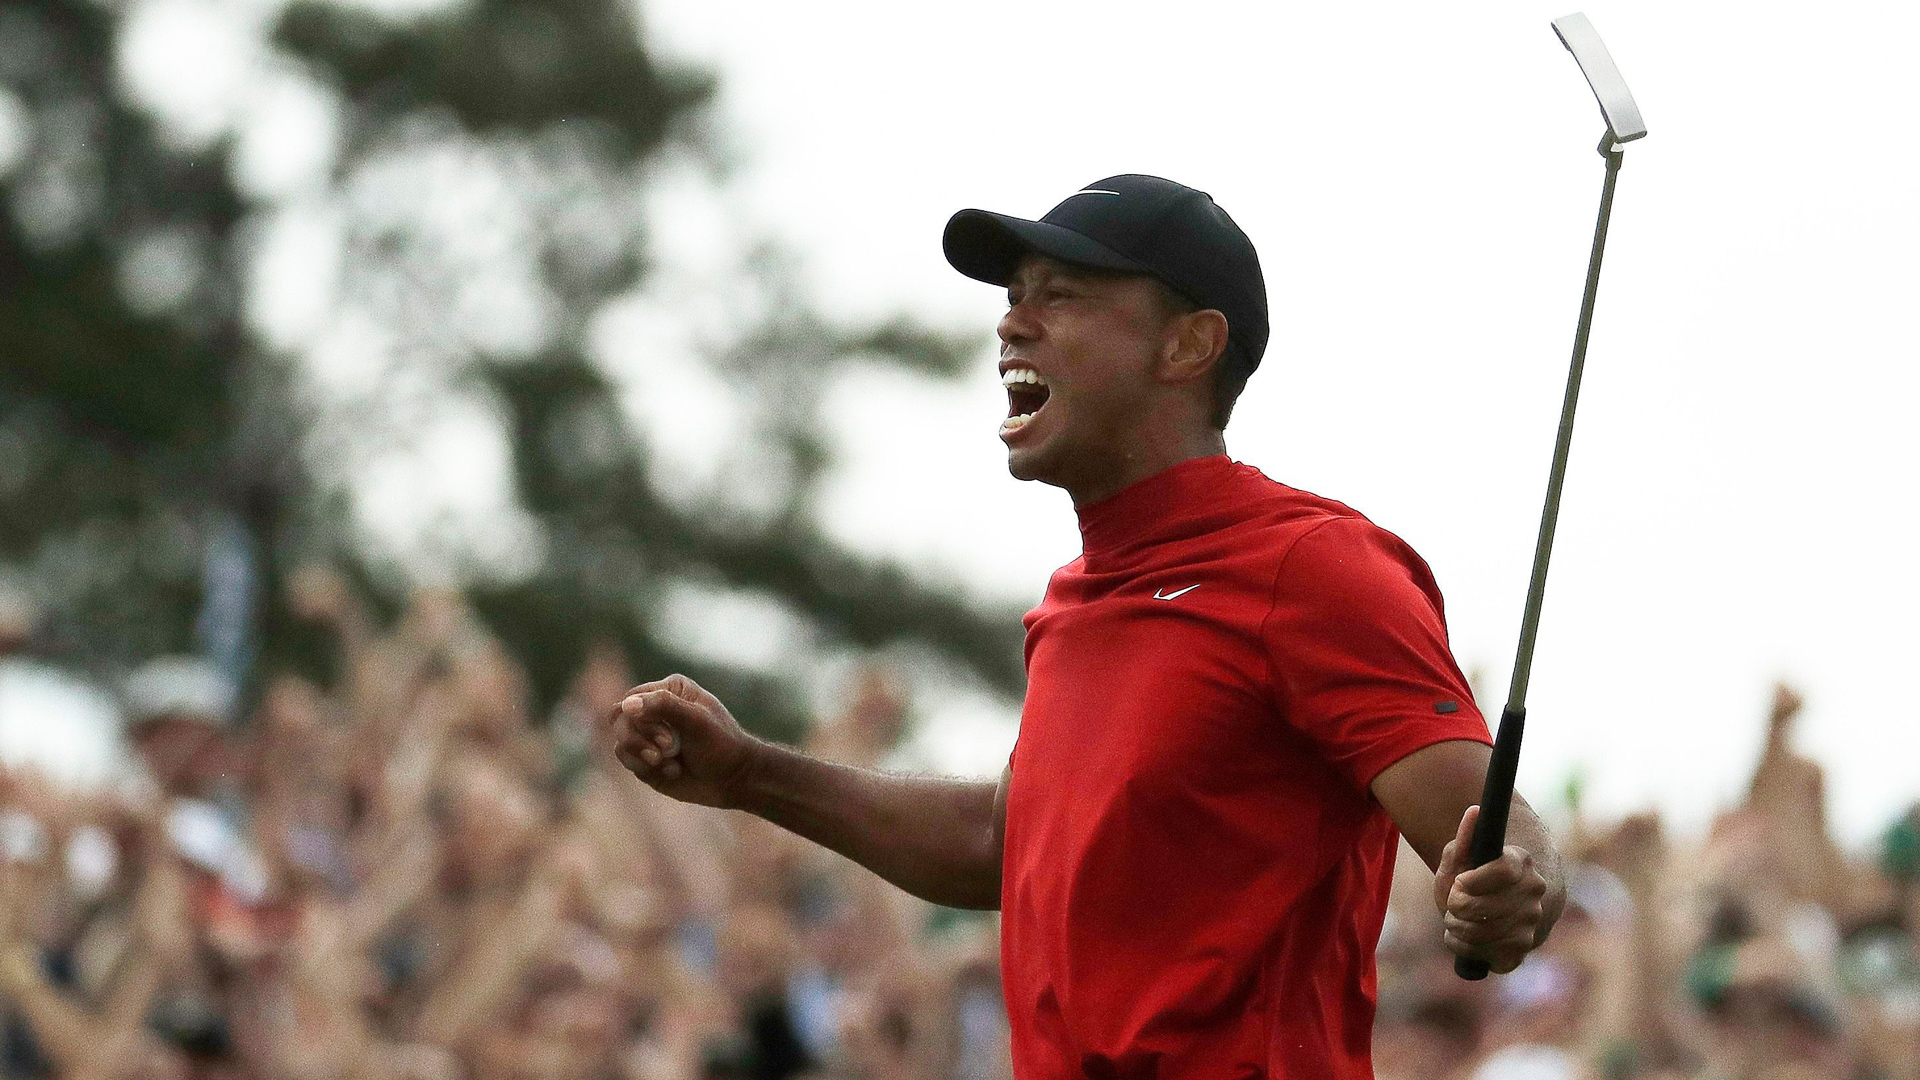 Today's Richest Athletes in the World